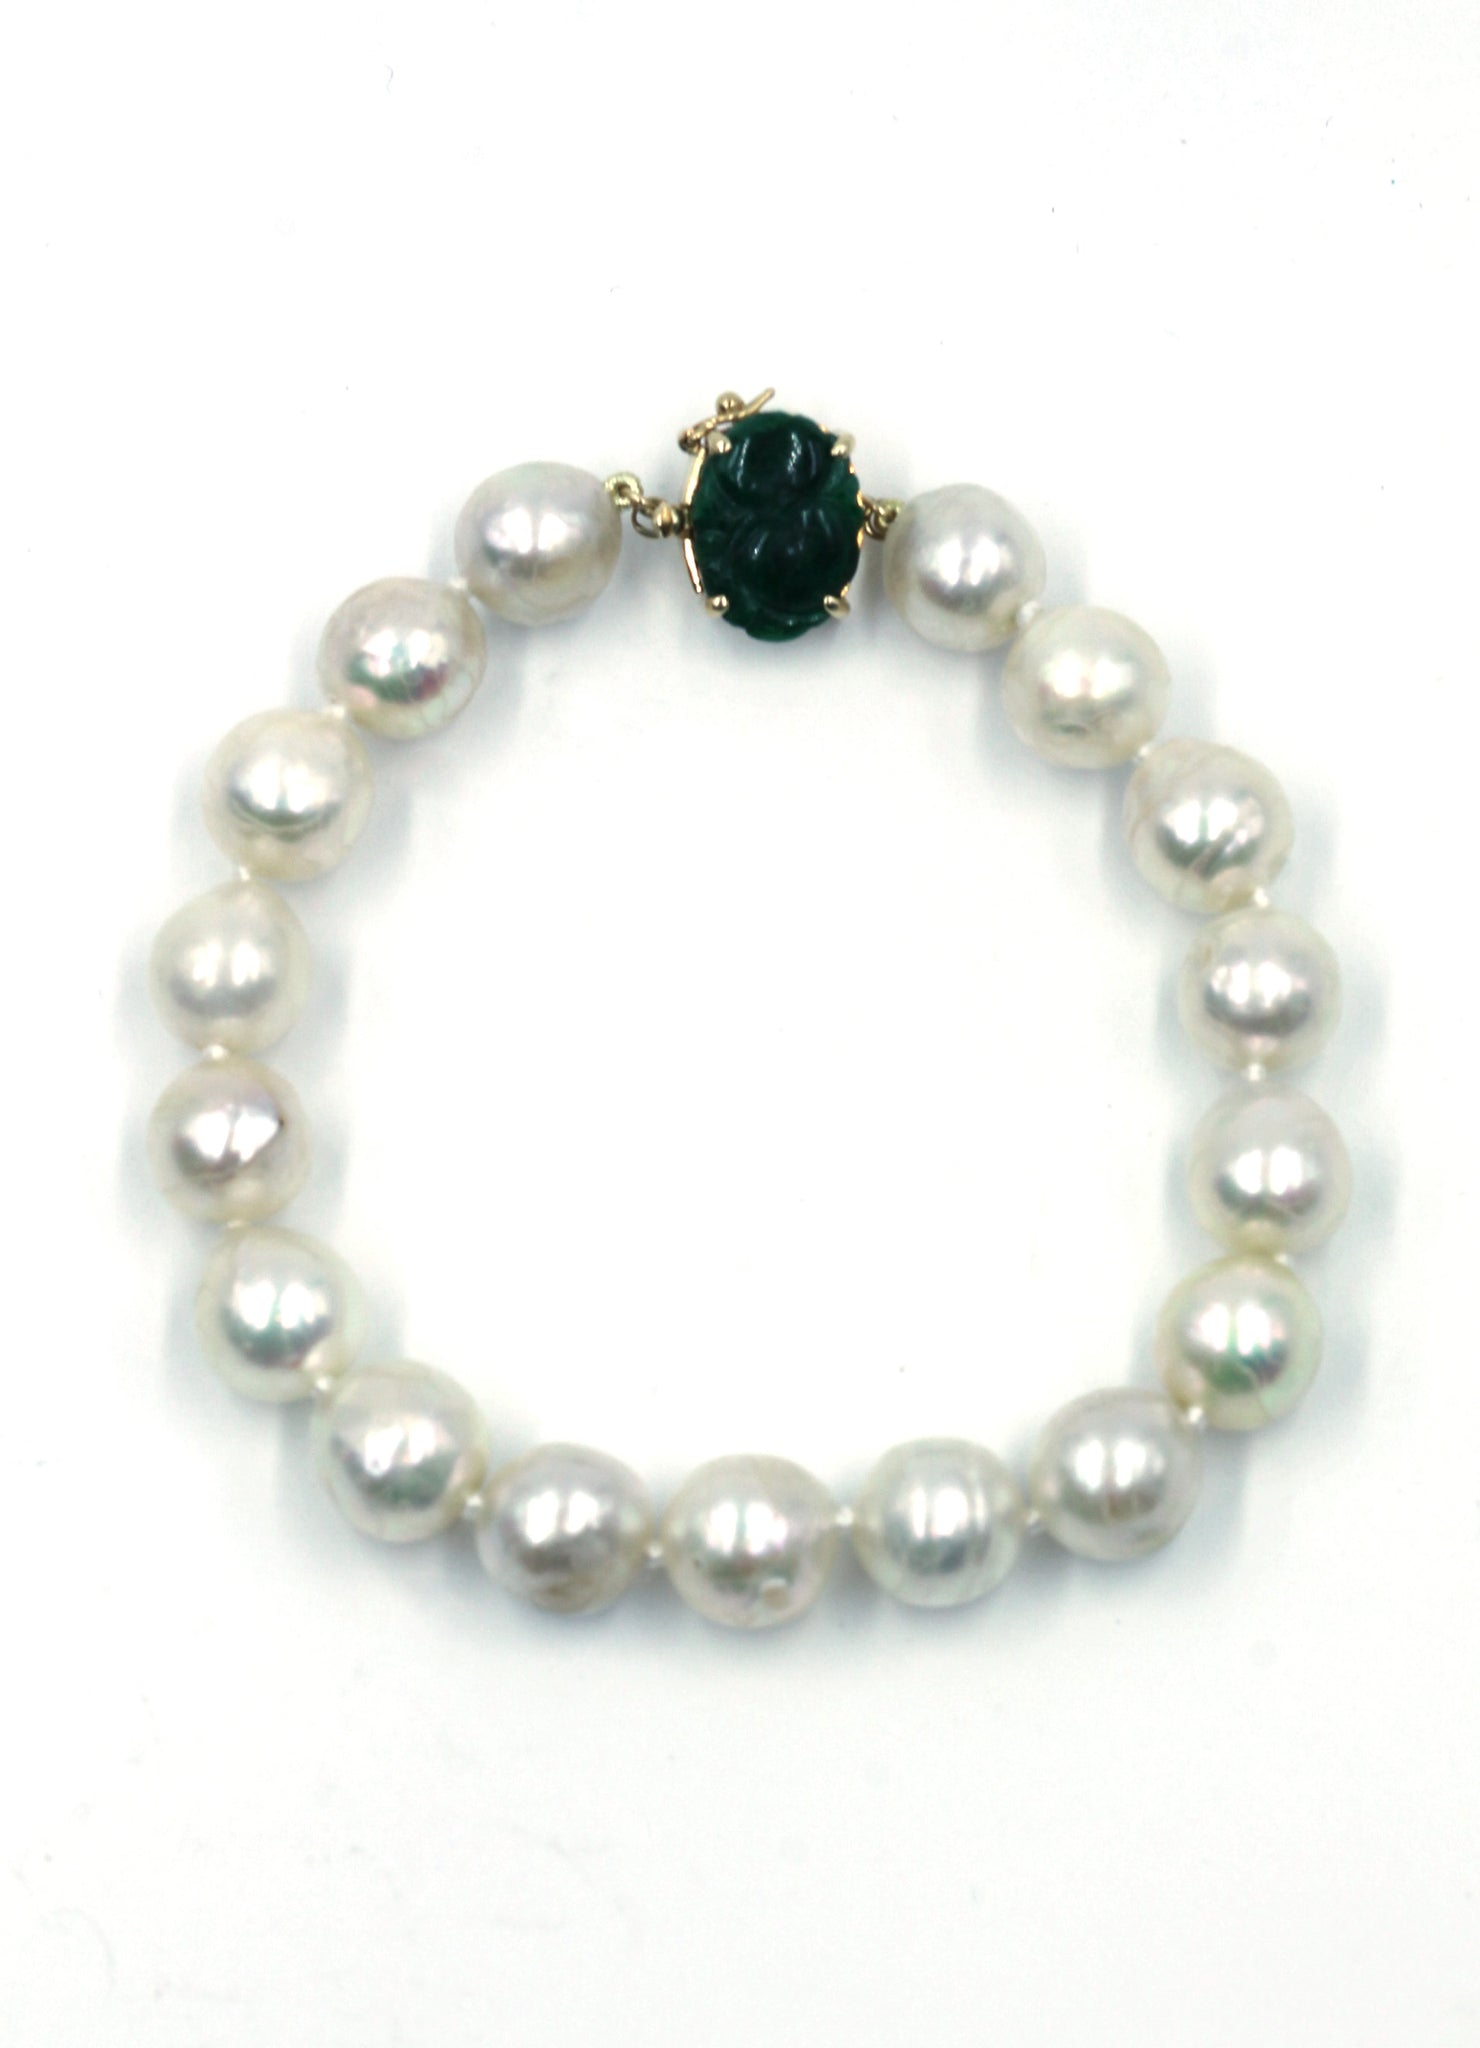 Deleuse Baroque Pearl and Jade Bracelet, SOLD